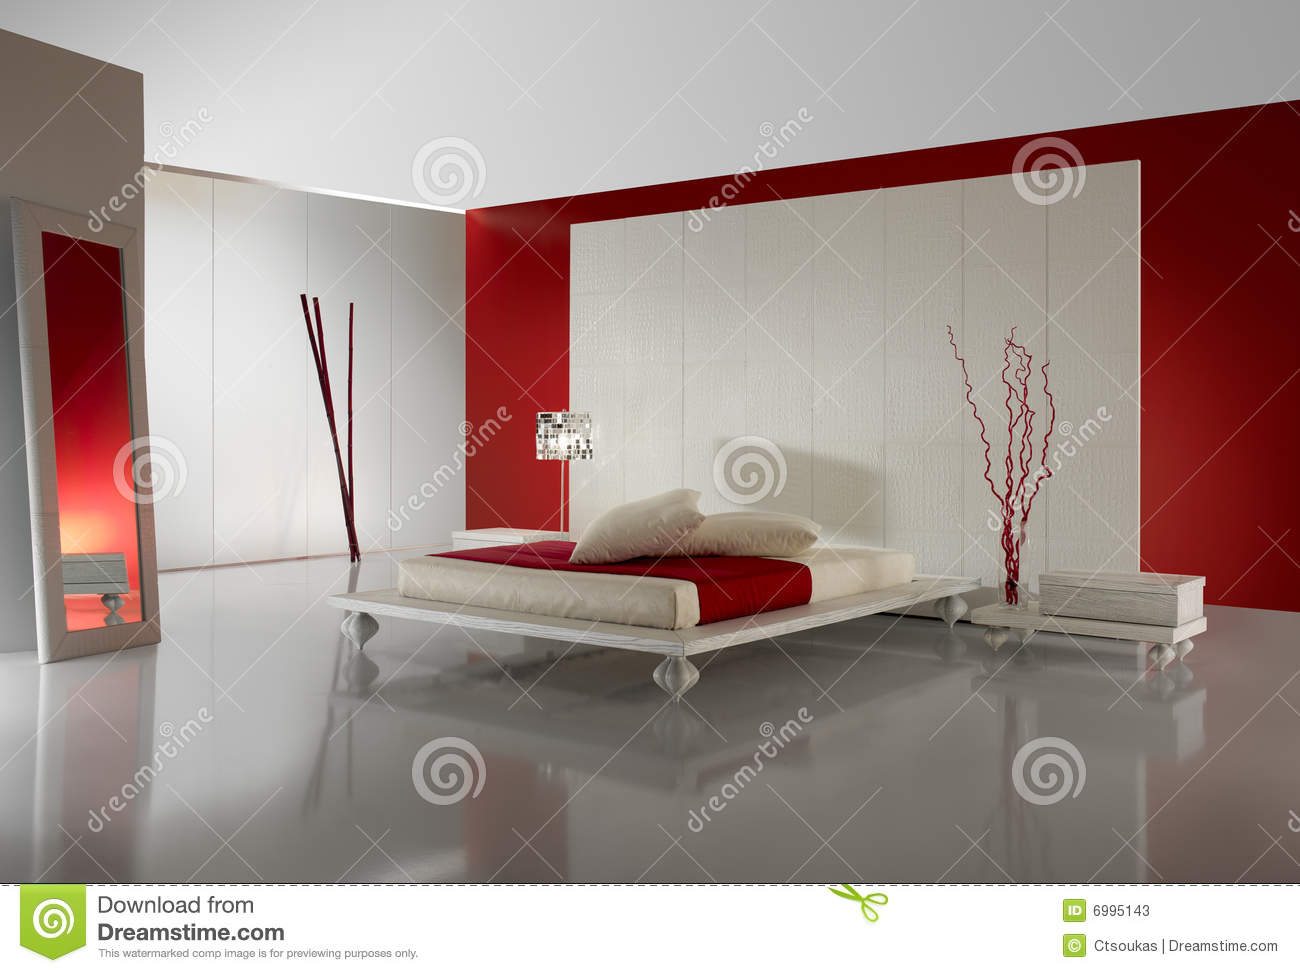 Chambre Coucher Luxueuse Moderne Photos Stock Image